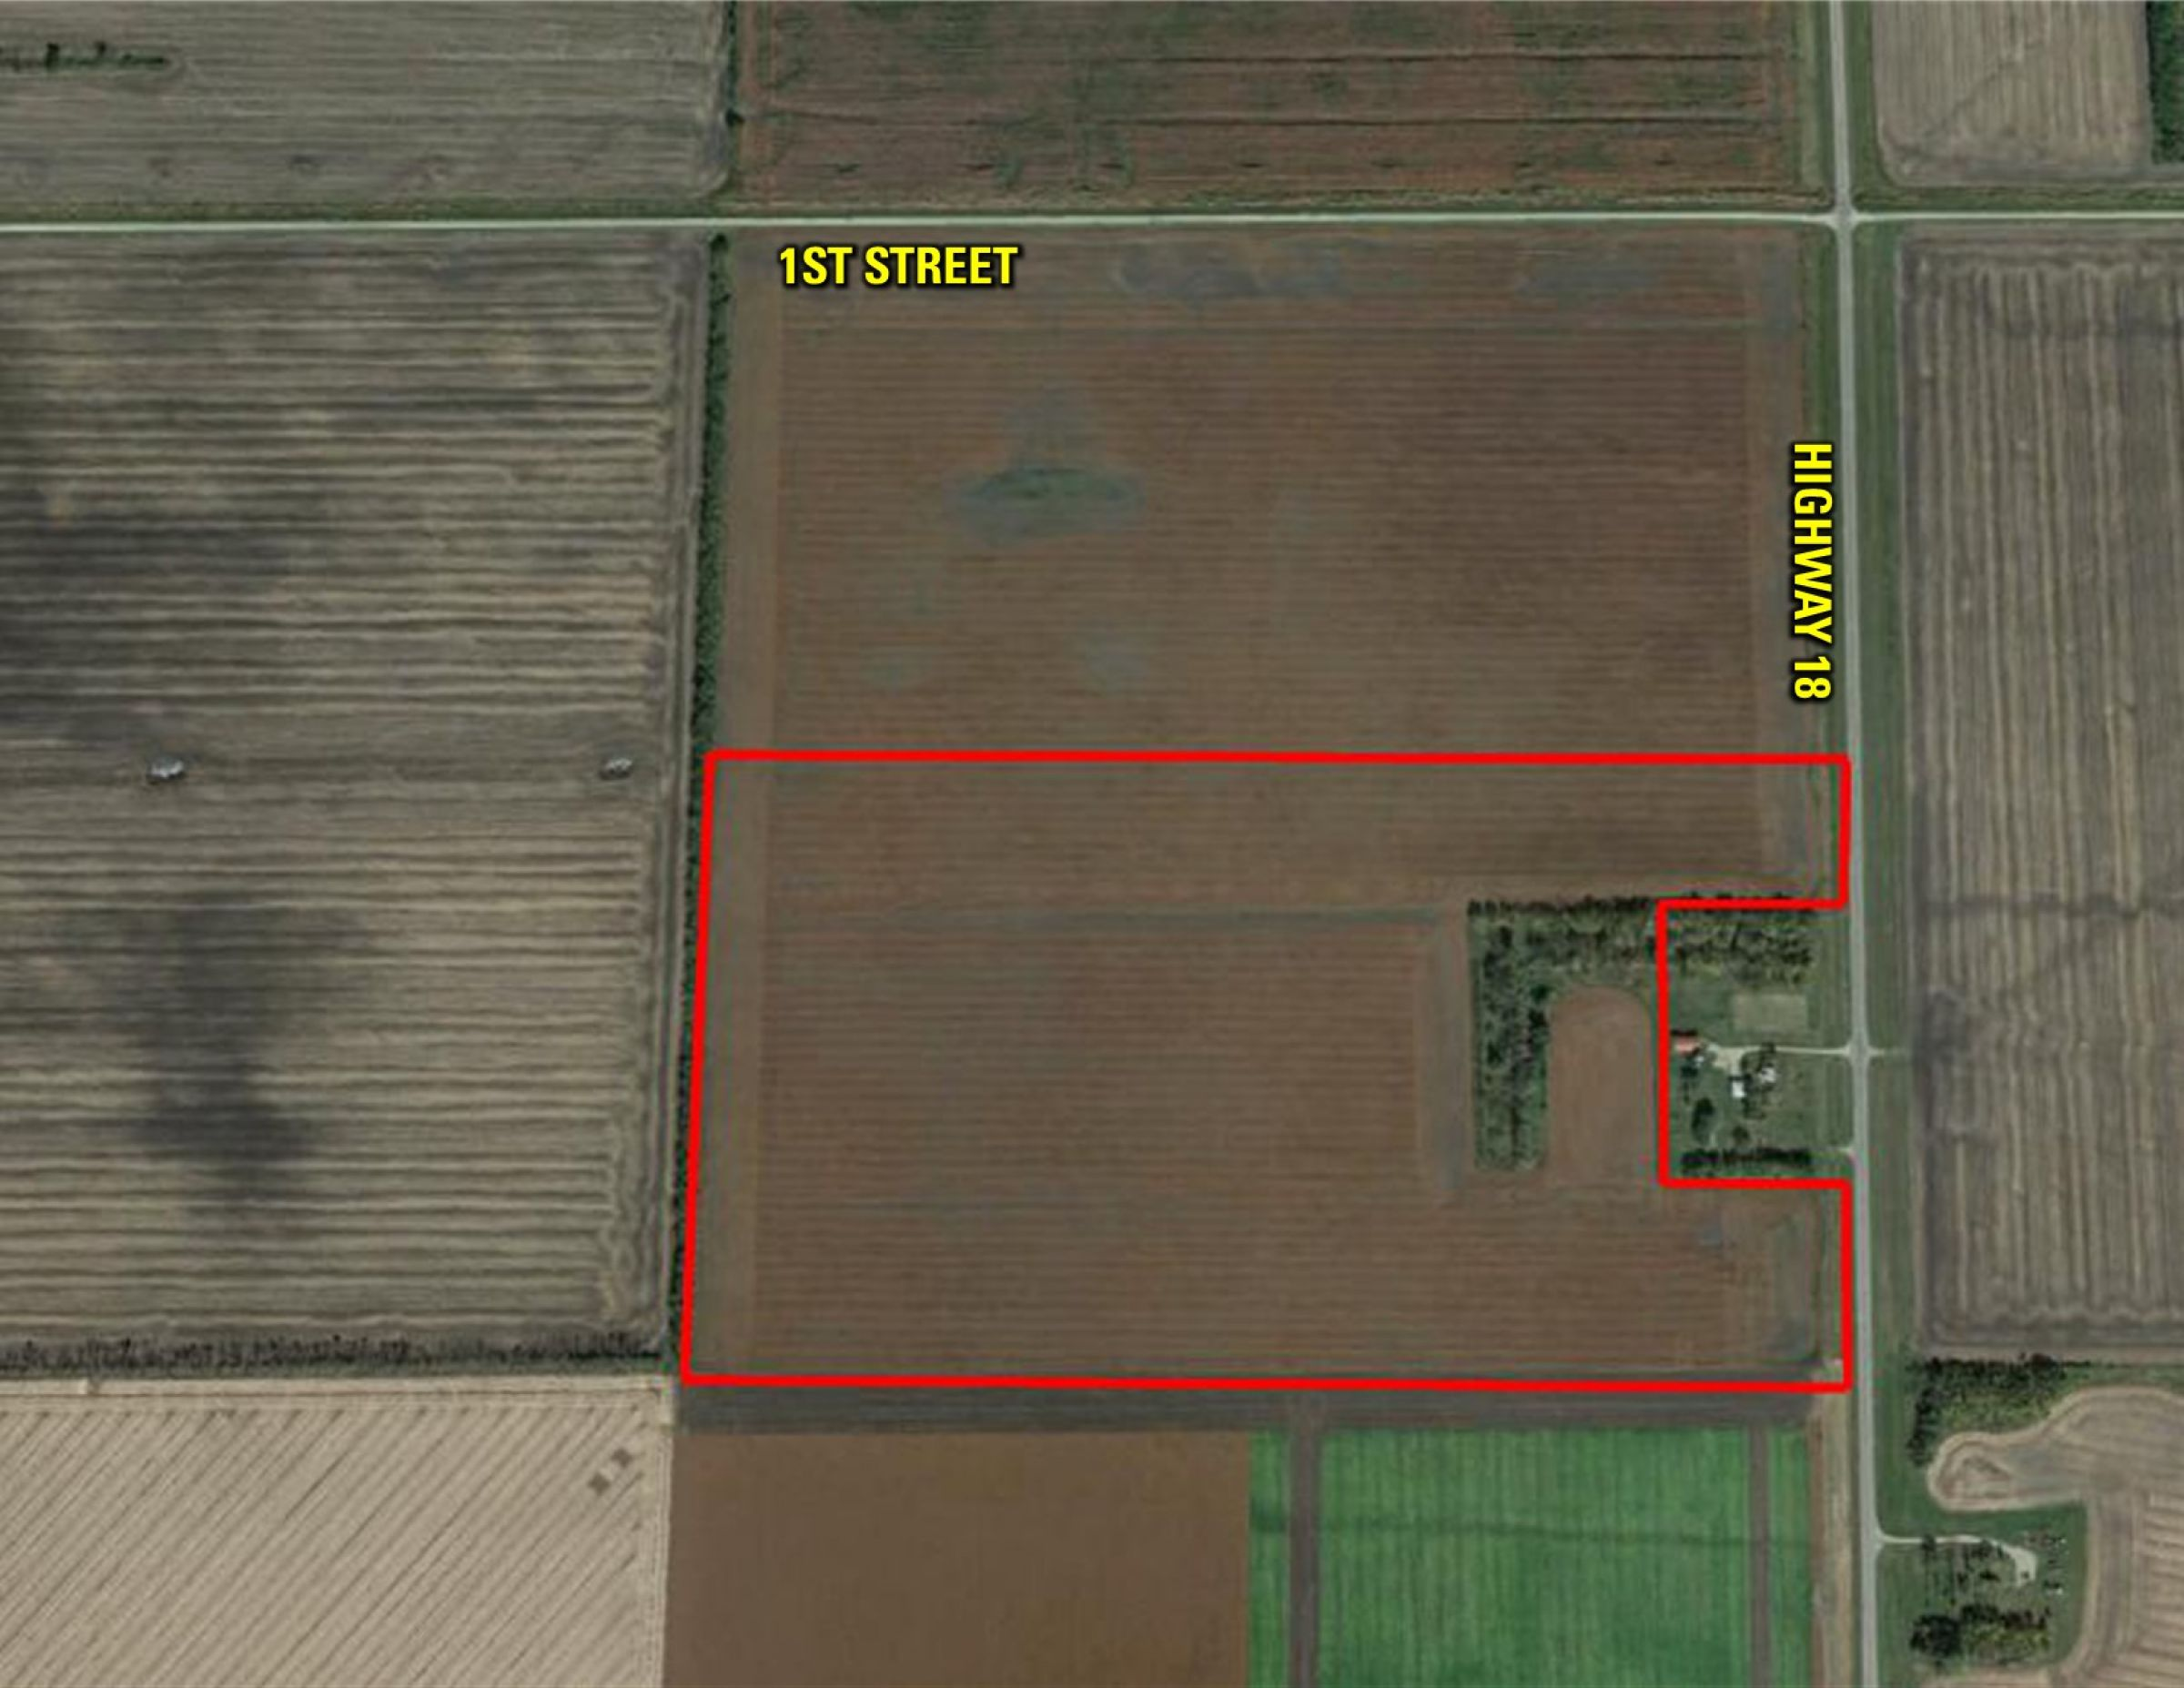 auctions-traill-county-north-dakota-74-acres-listing-number-15607-0-2021-06-22-202247.jpg